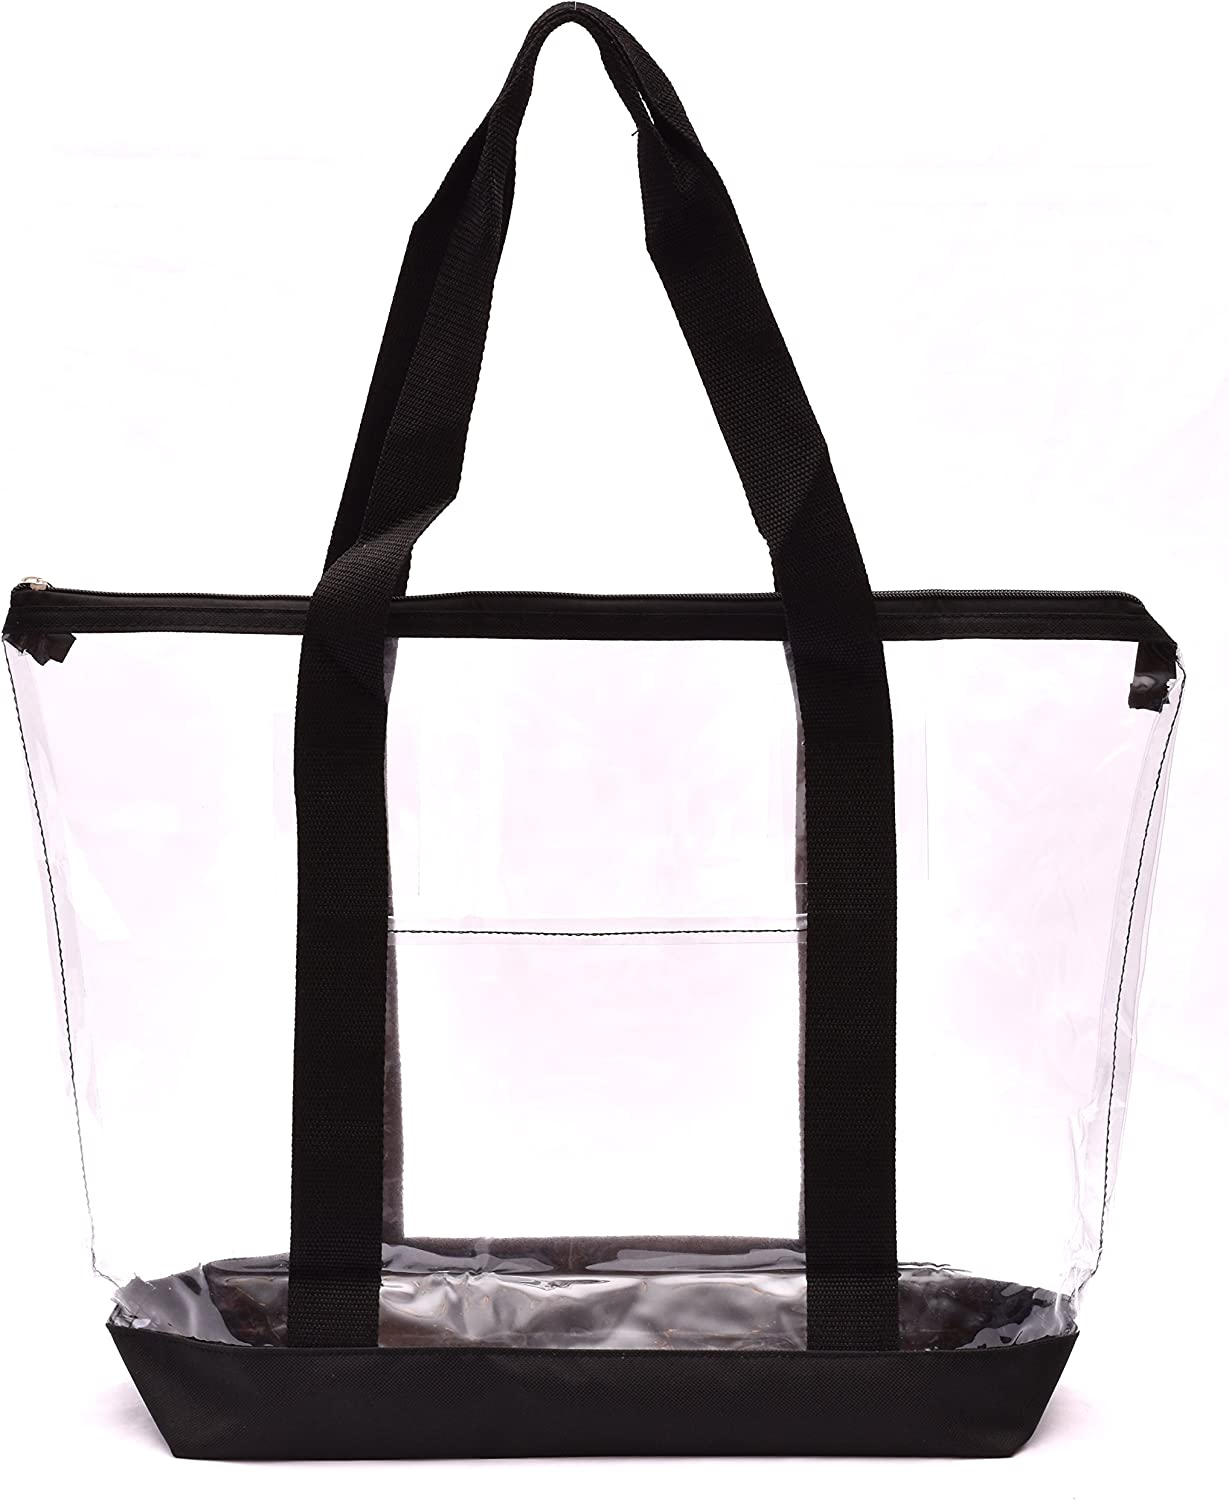 Clear Tote Bag - Zipper Closure, Long Shoulder Strap, Fabric Trimming.